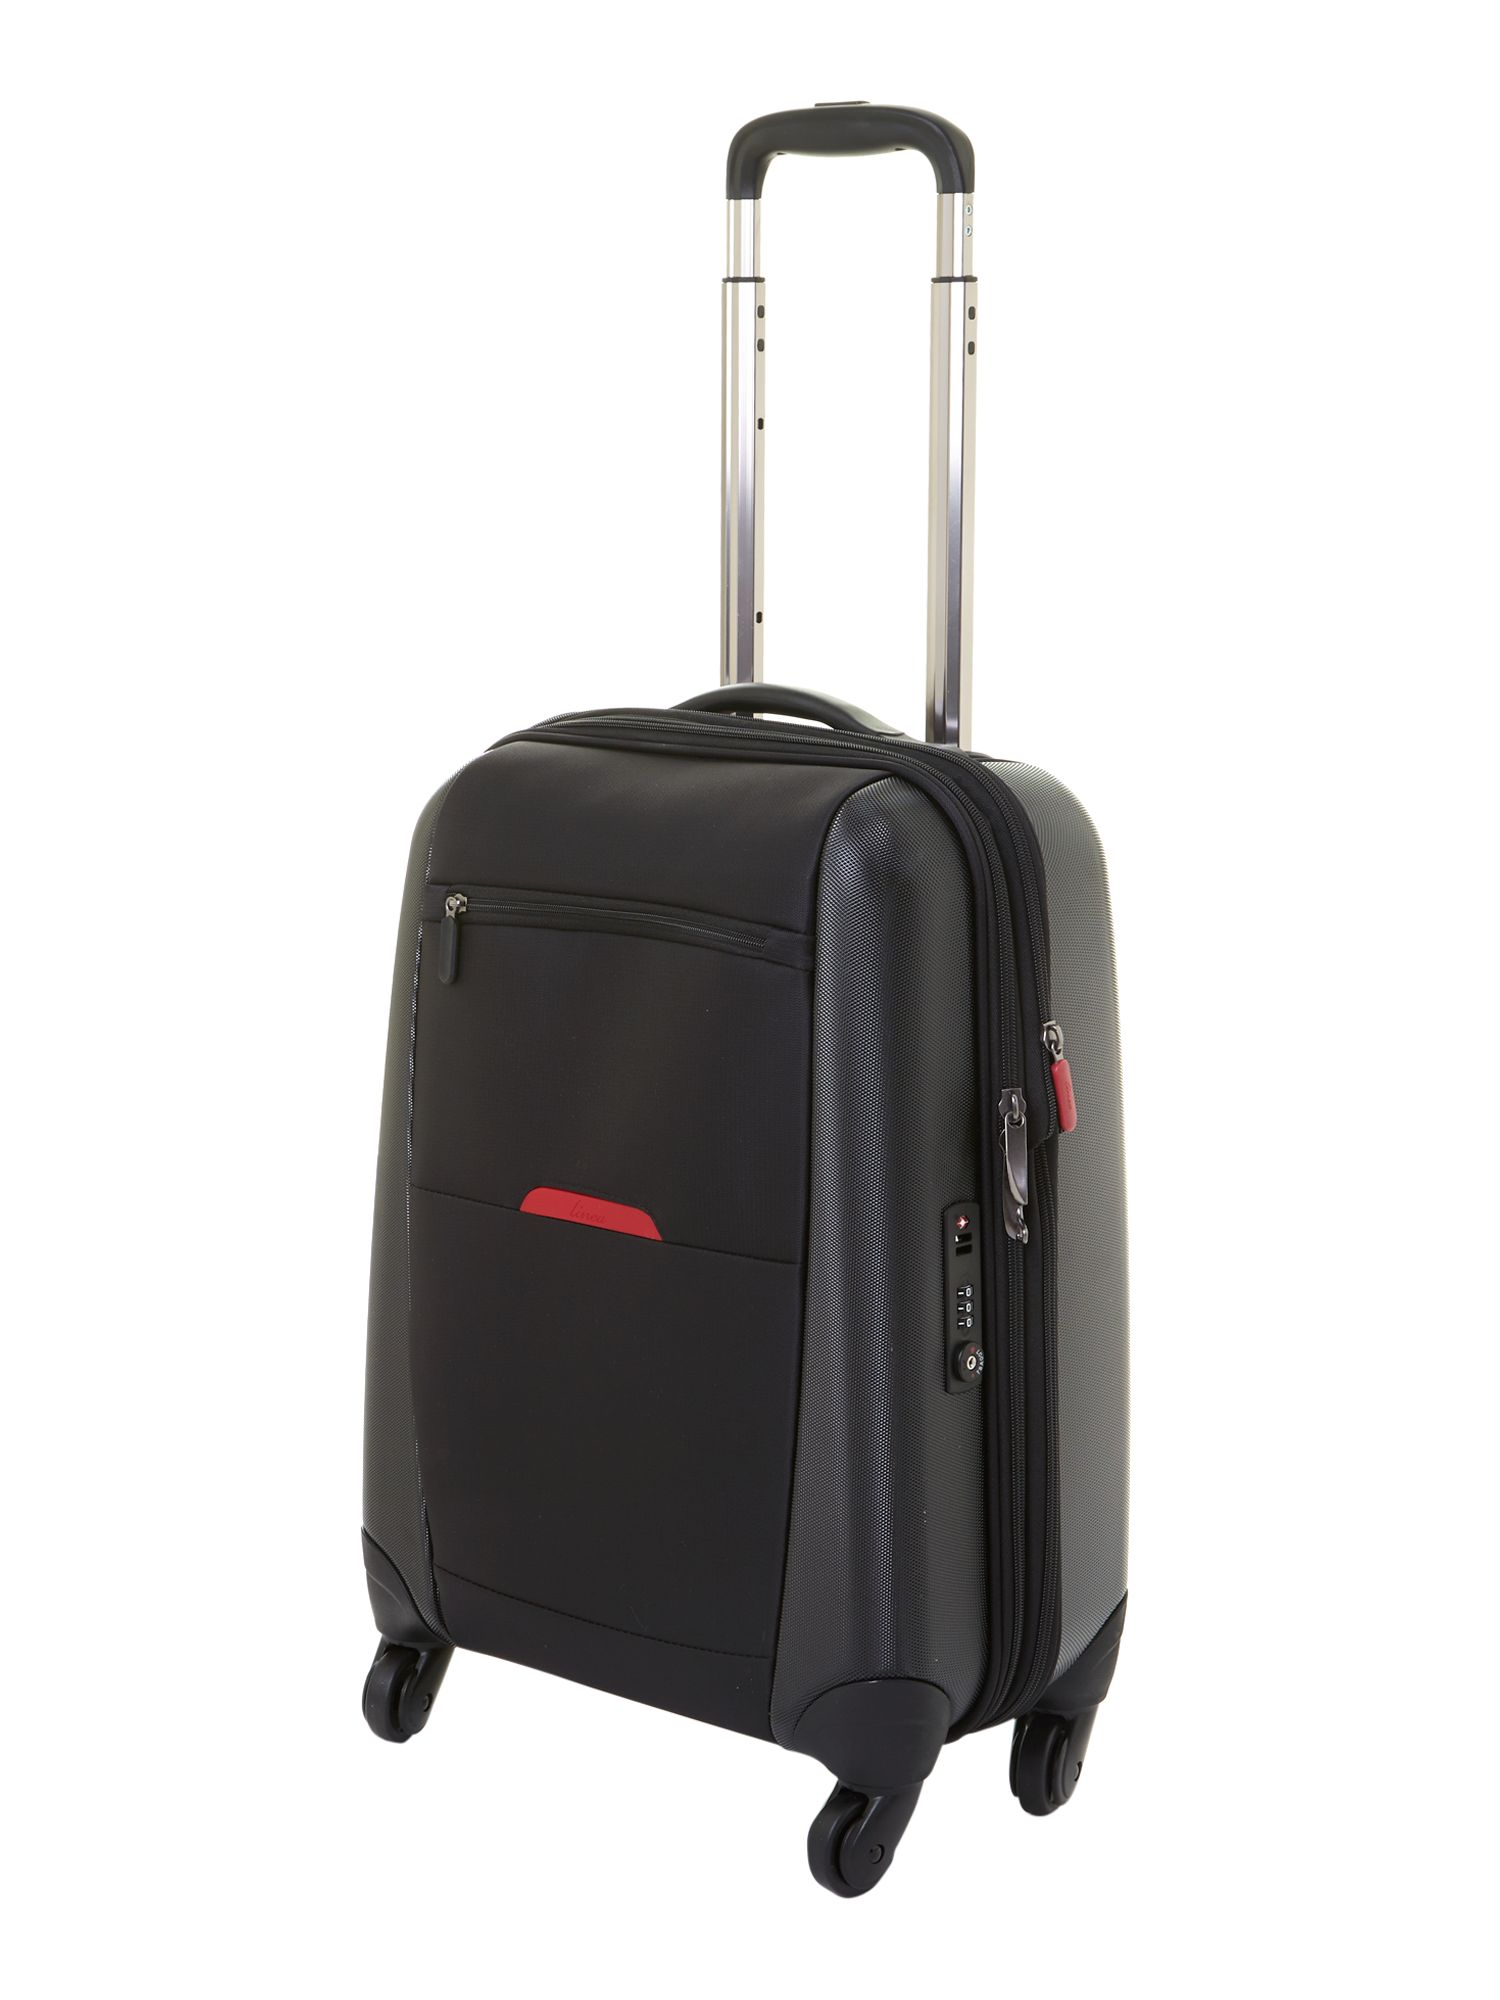 Hylite 4-Wheel Cabin Suitcase